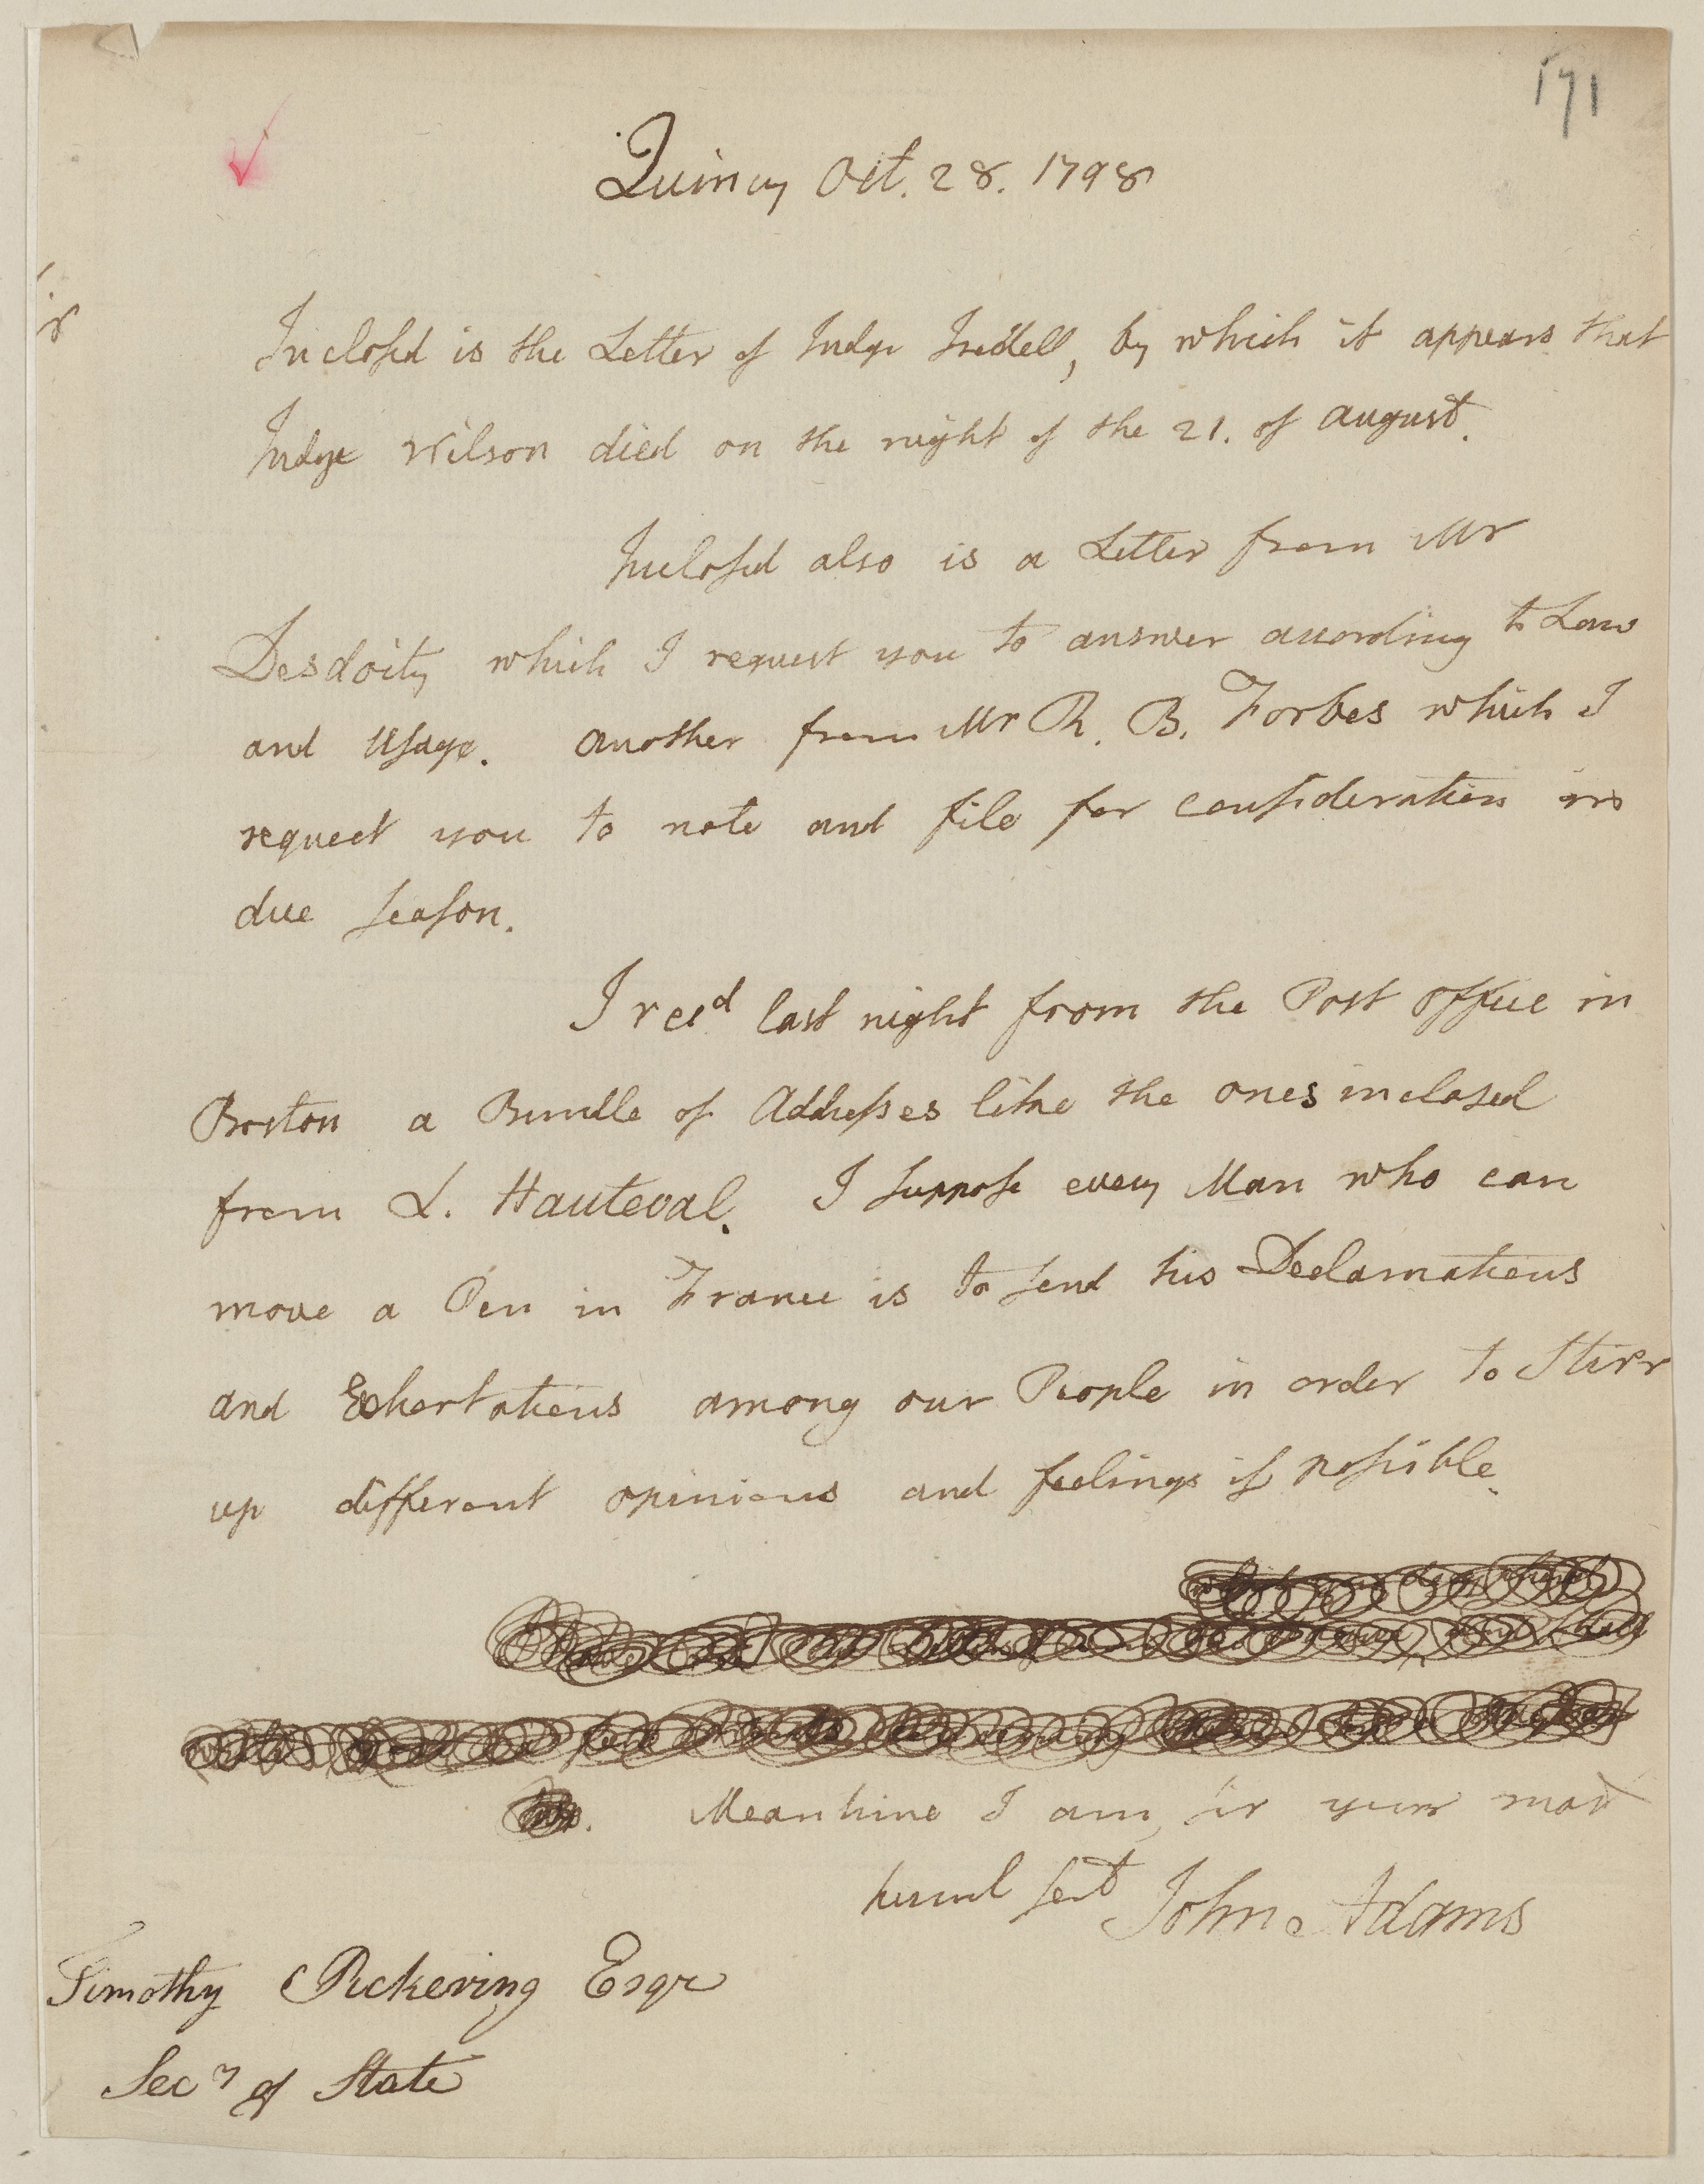 Letter from President John Adams to Secretary of State Timothy Pickering